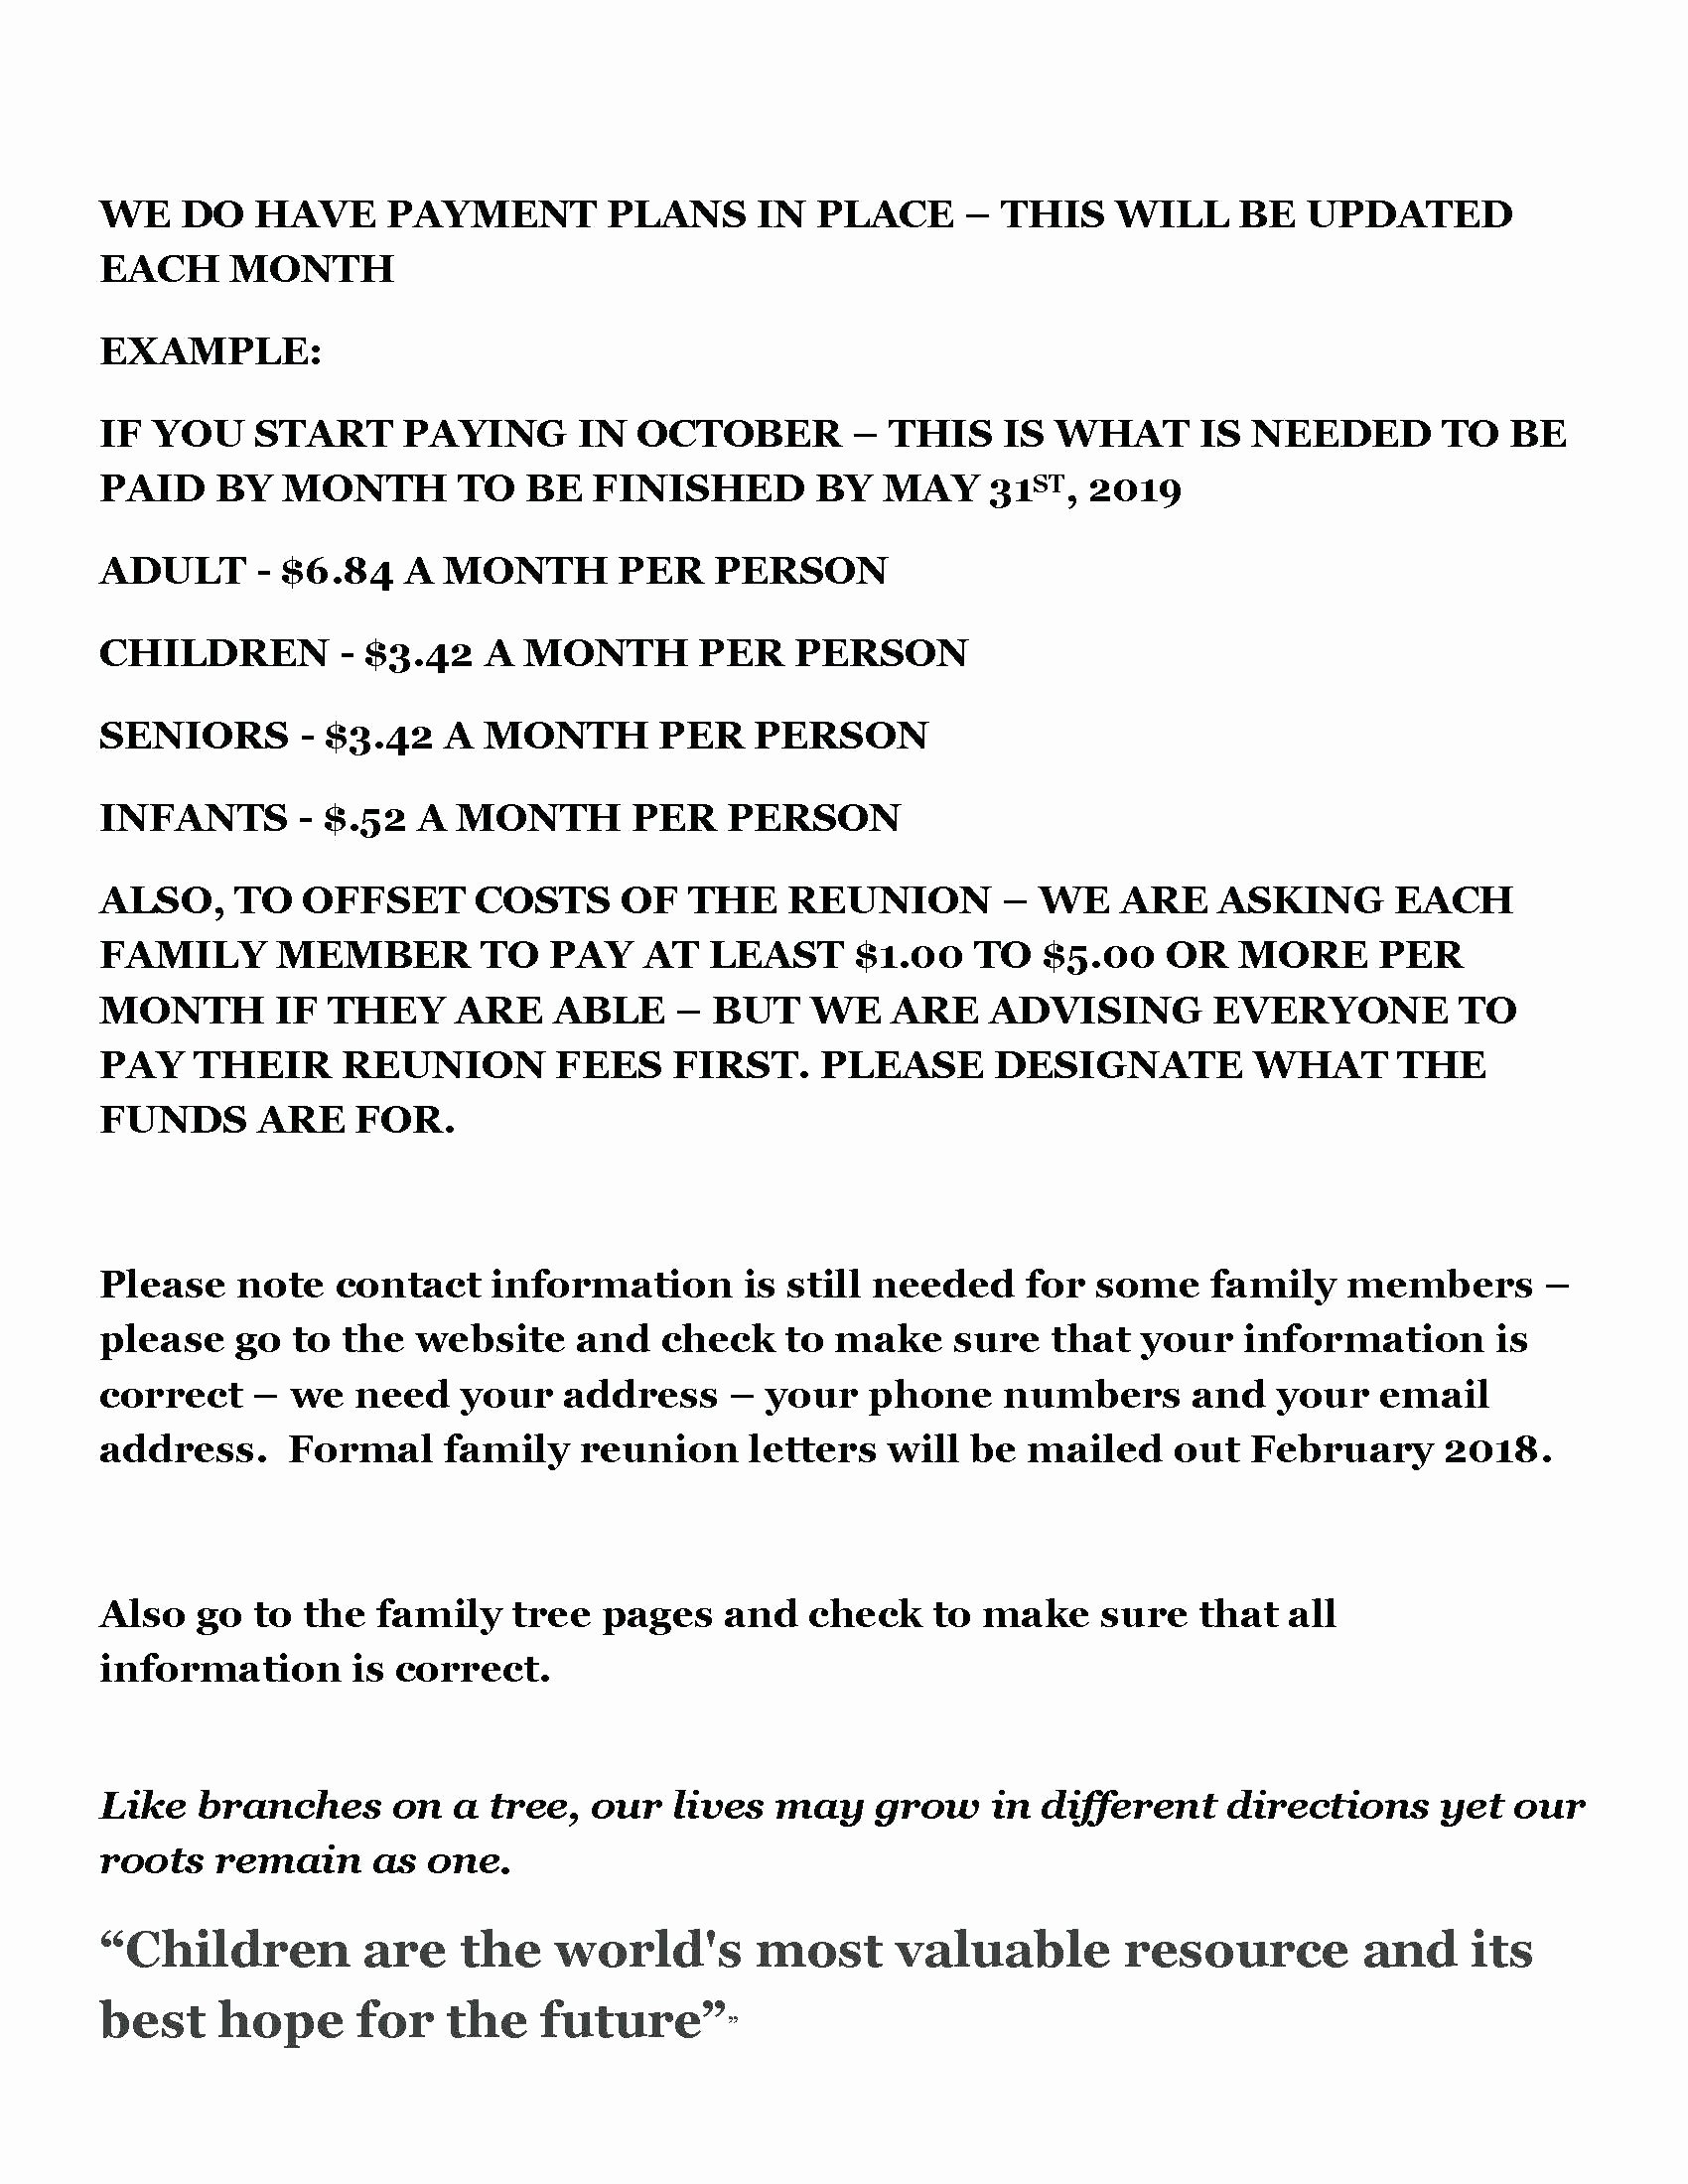 Family Reunion Newsletter Template Beautiful Family Reunion Letter to Members Wel E Template